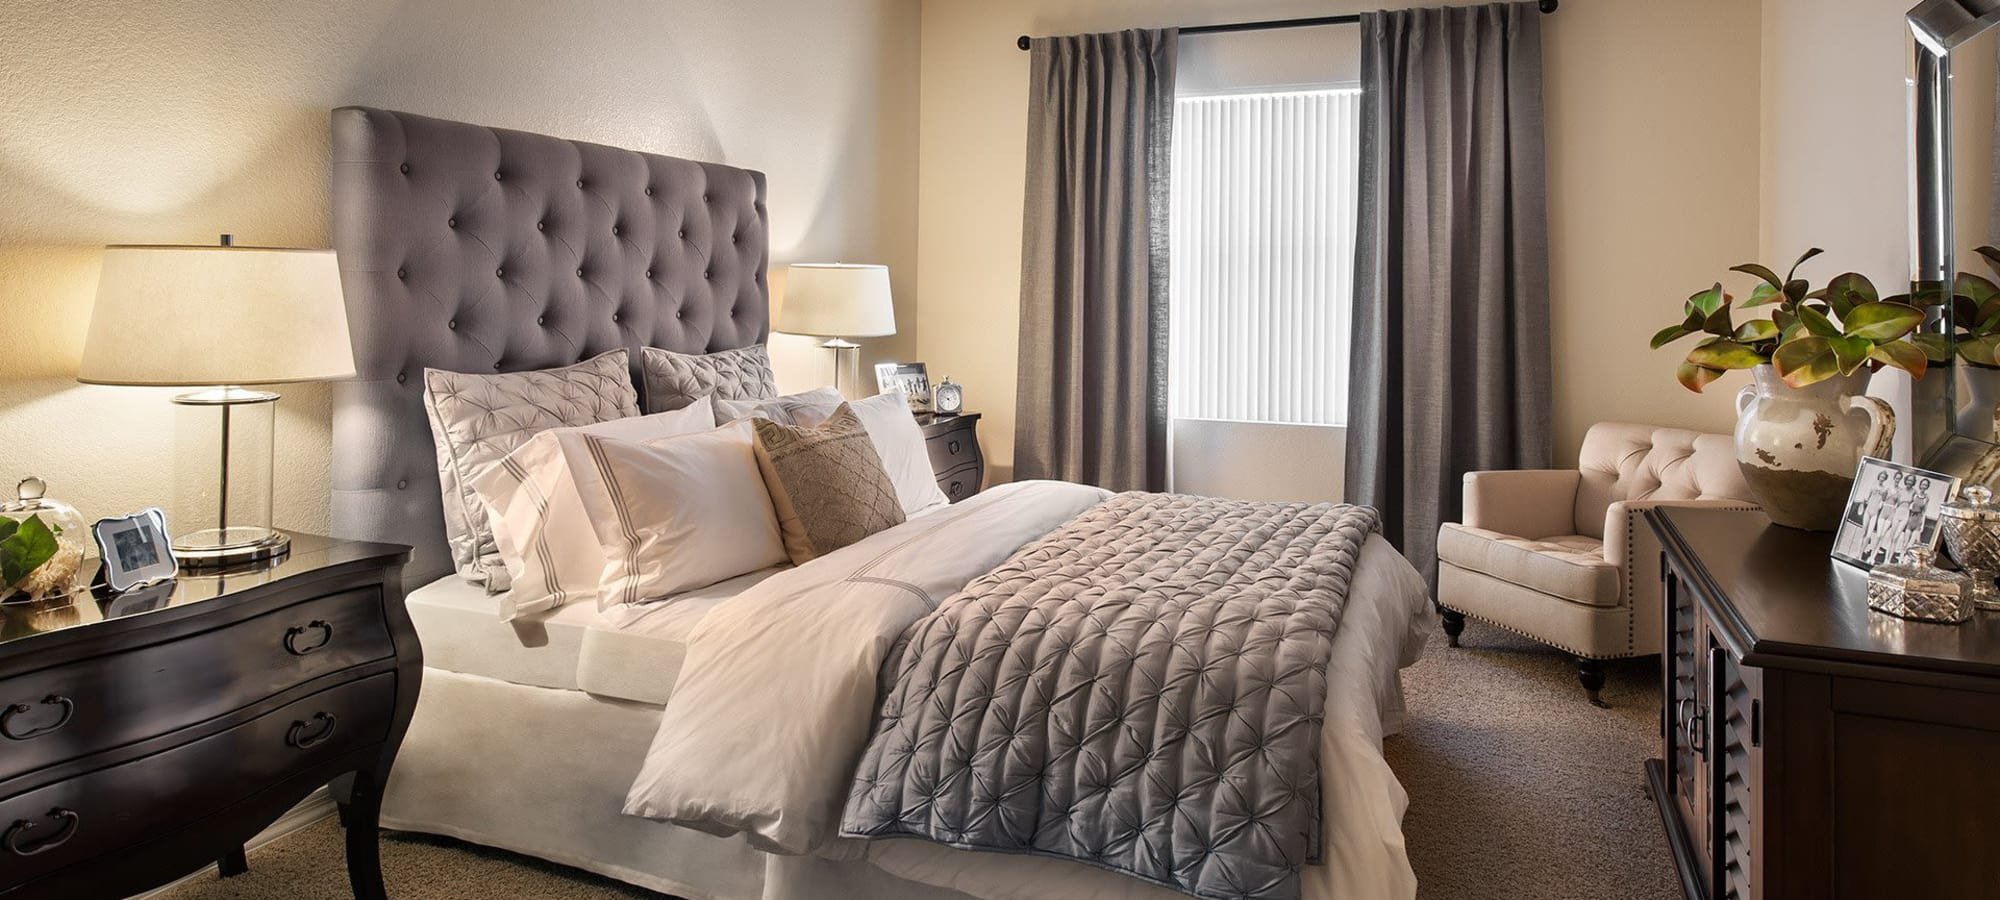 Well-decorated master bedroom in model home at San Milan in Phoenix, Arizona